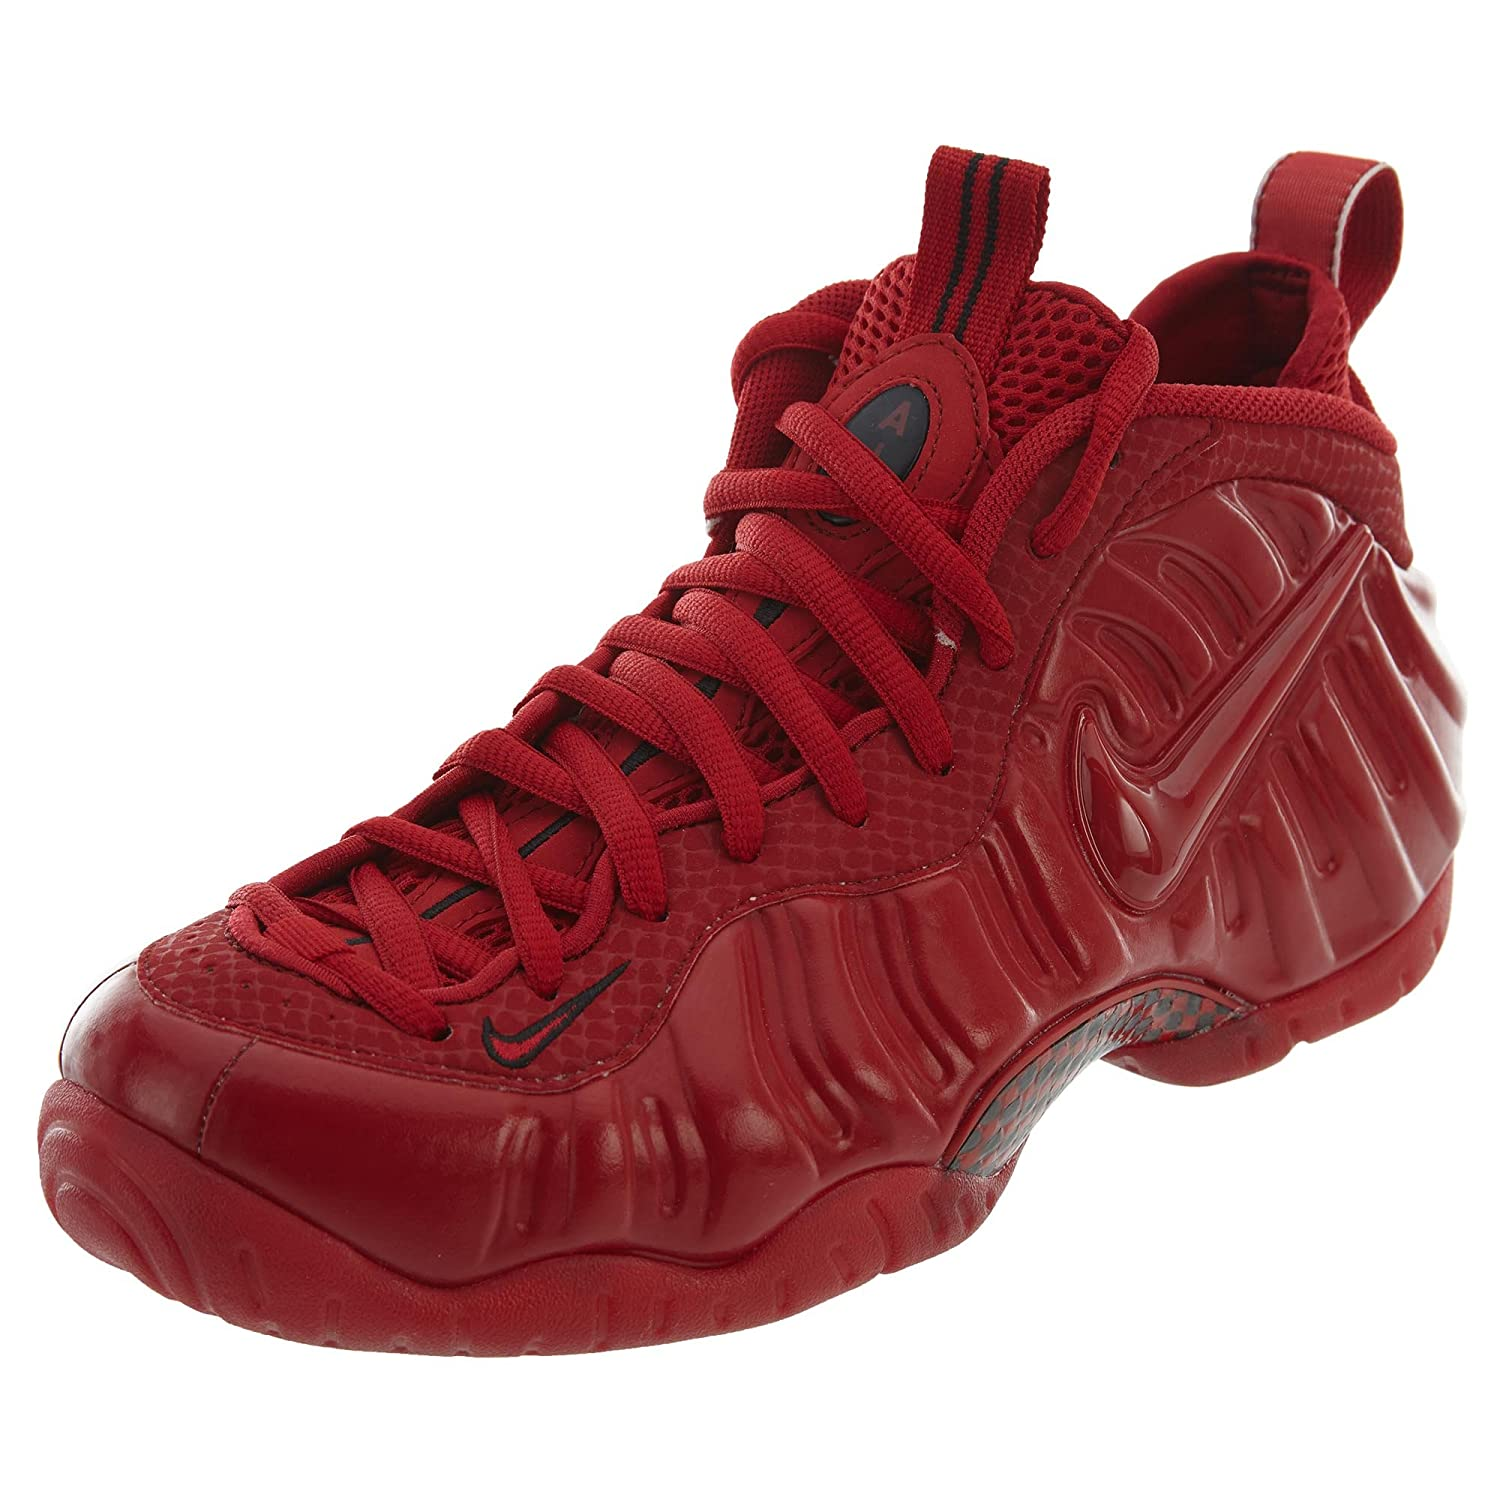 Nike Air Foamposite Pro Red October – 624041 603